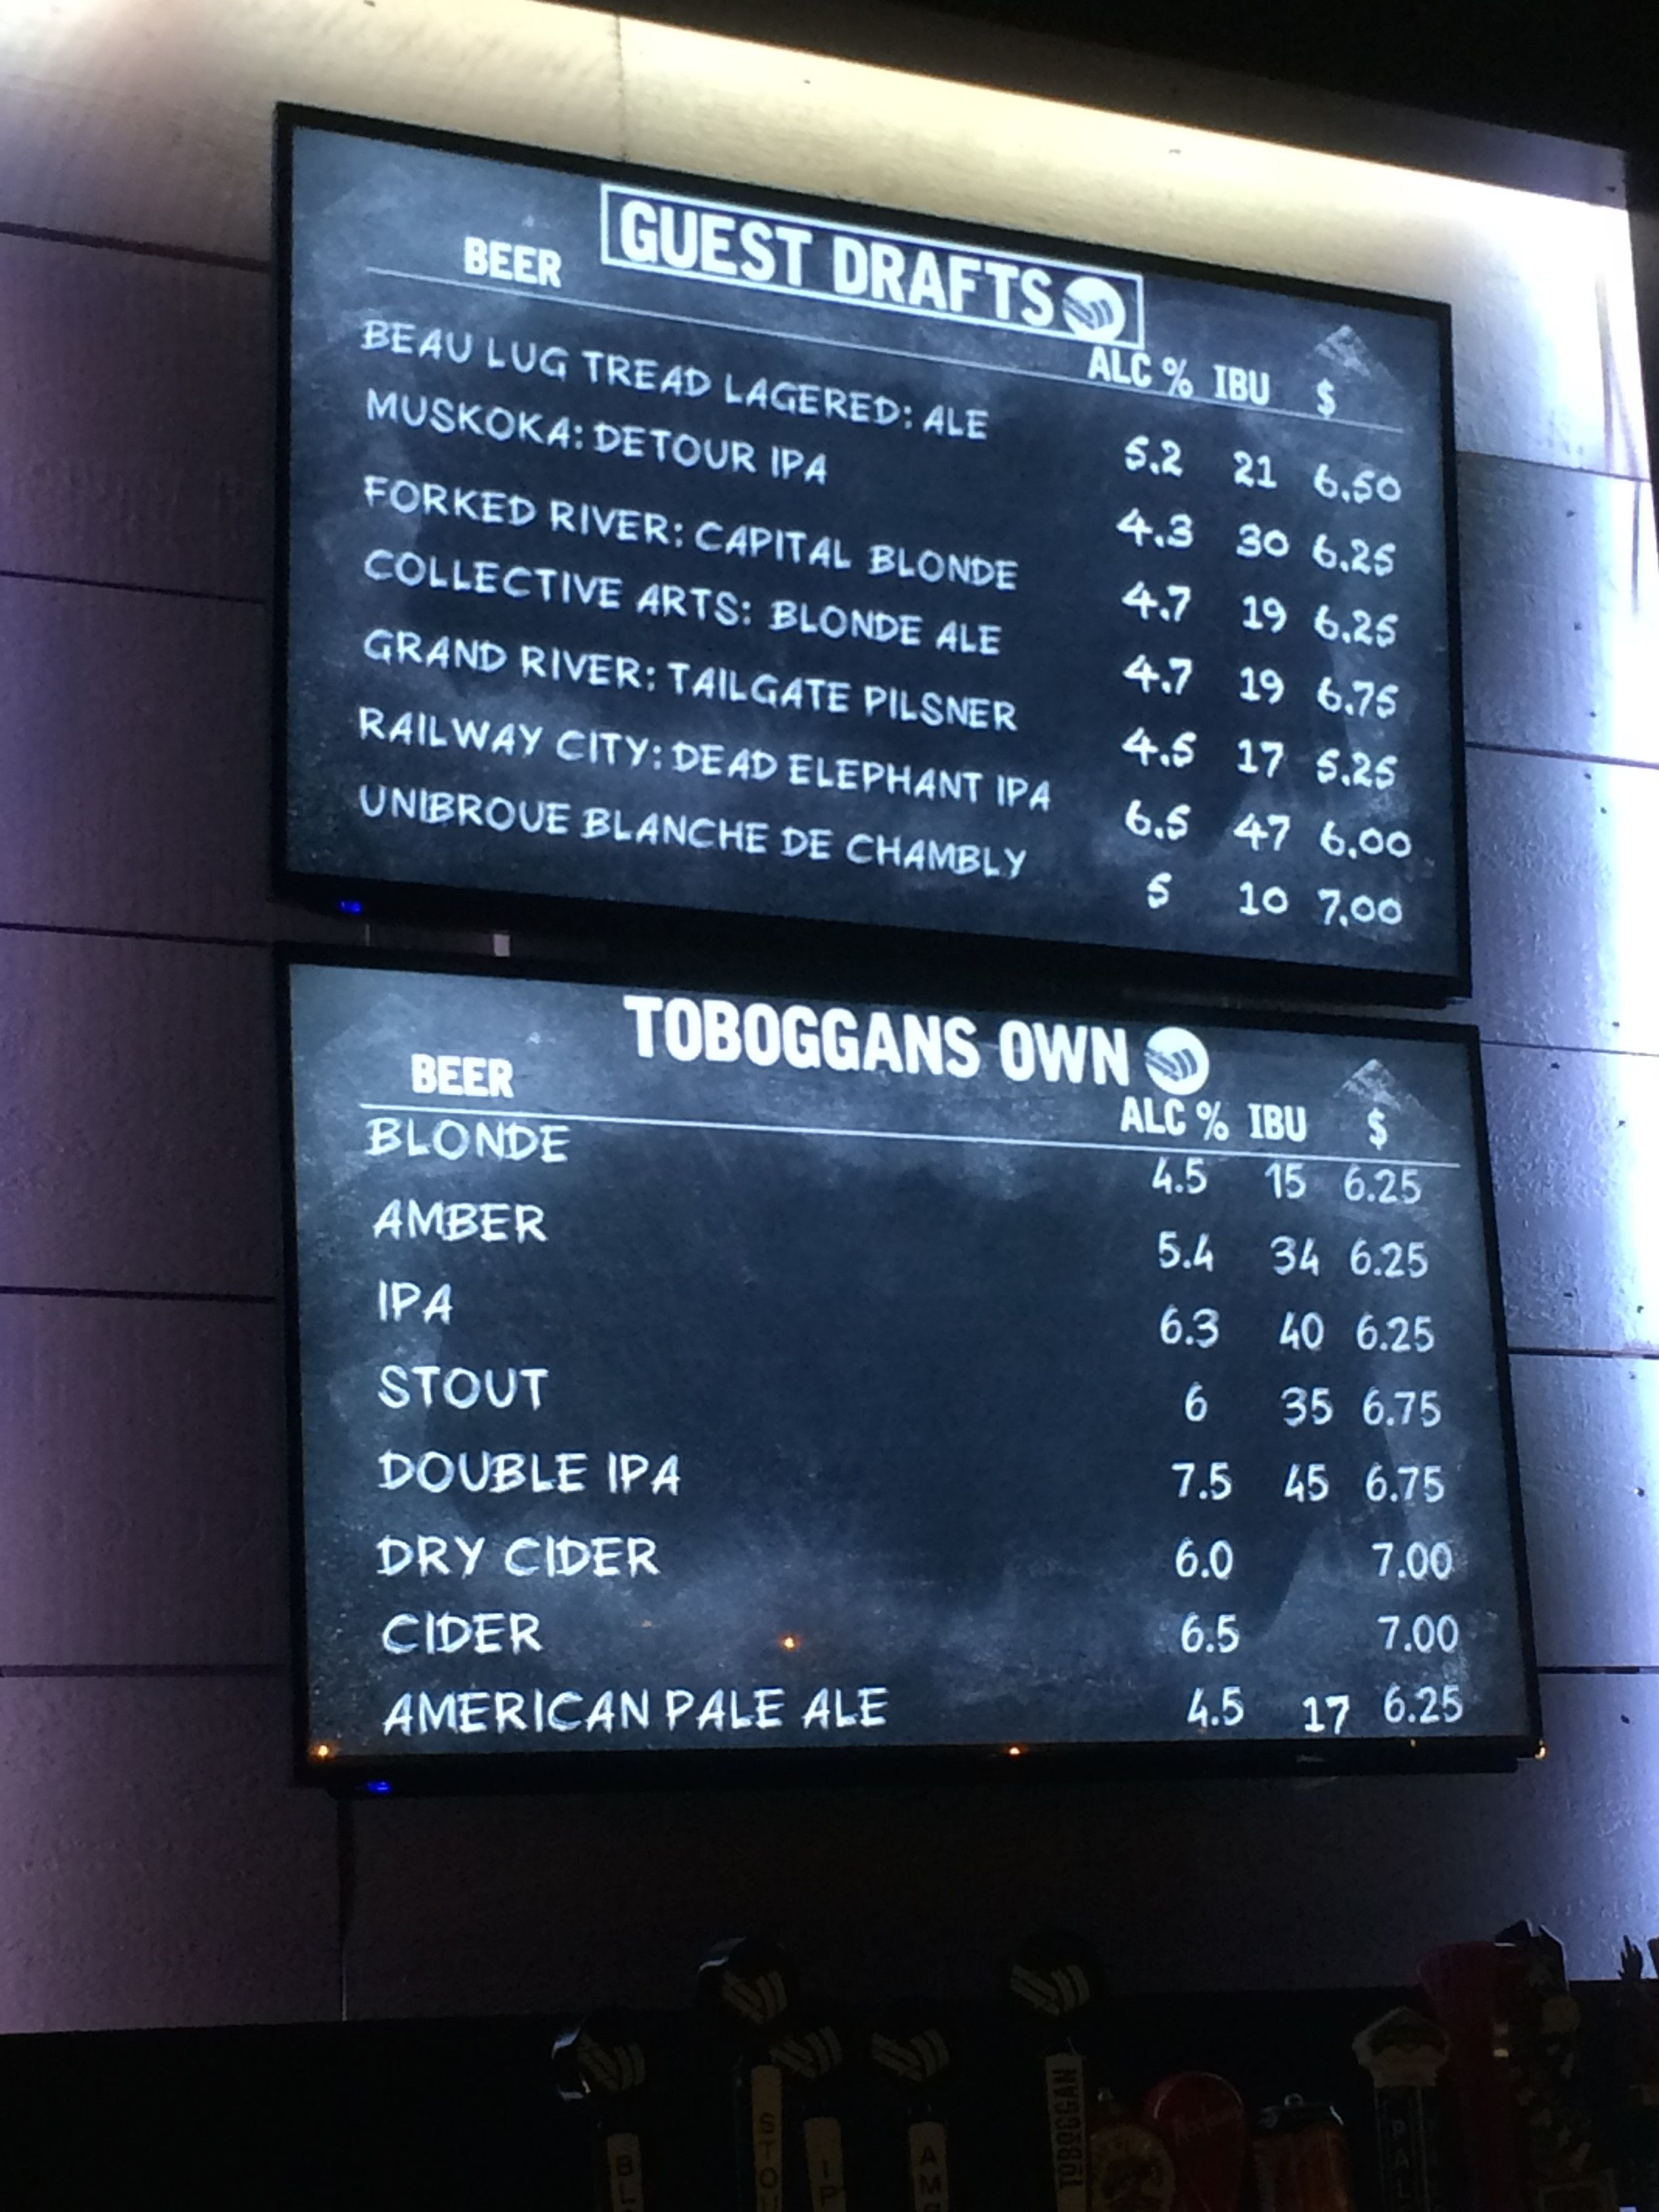 This Beer Menu Is A New Digital Screen Designed To Look Like An